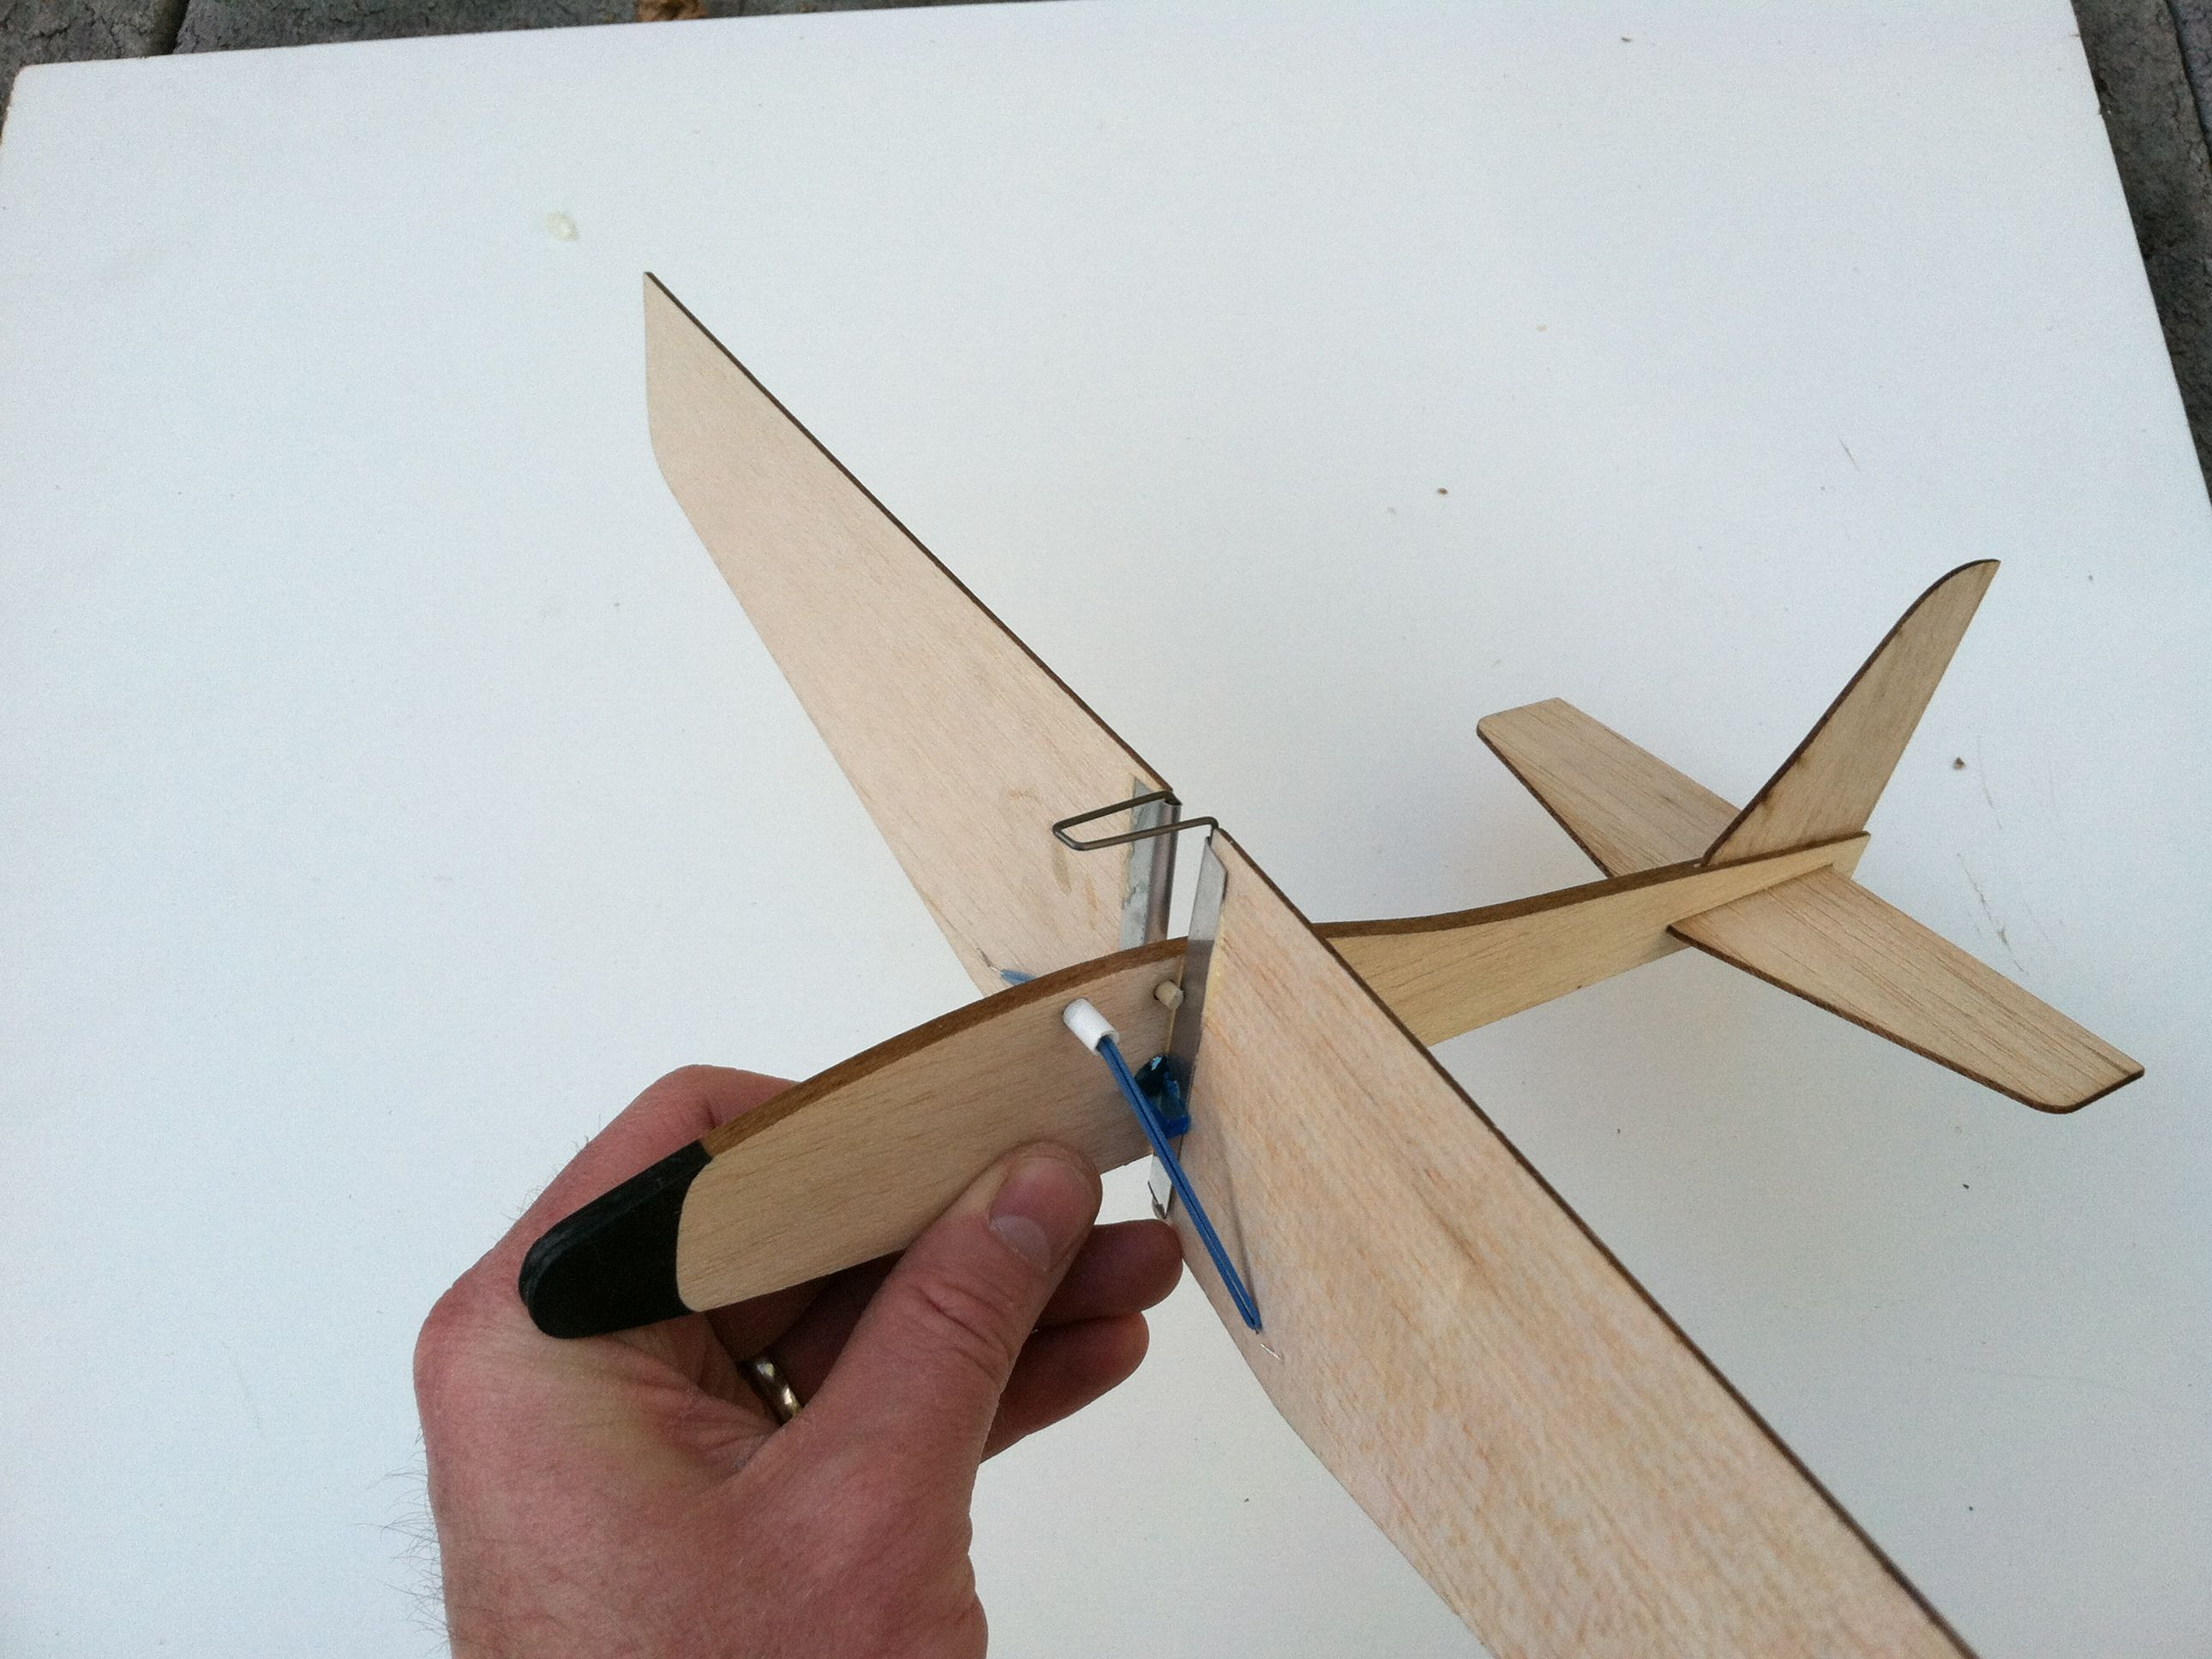 Folding-Wing Glider: Rockets Up … Glides Down!